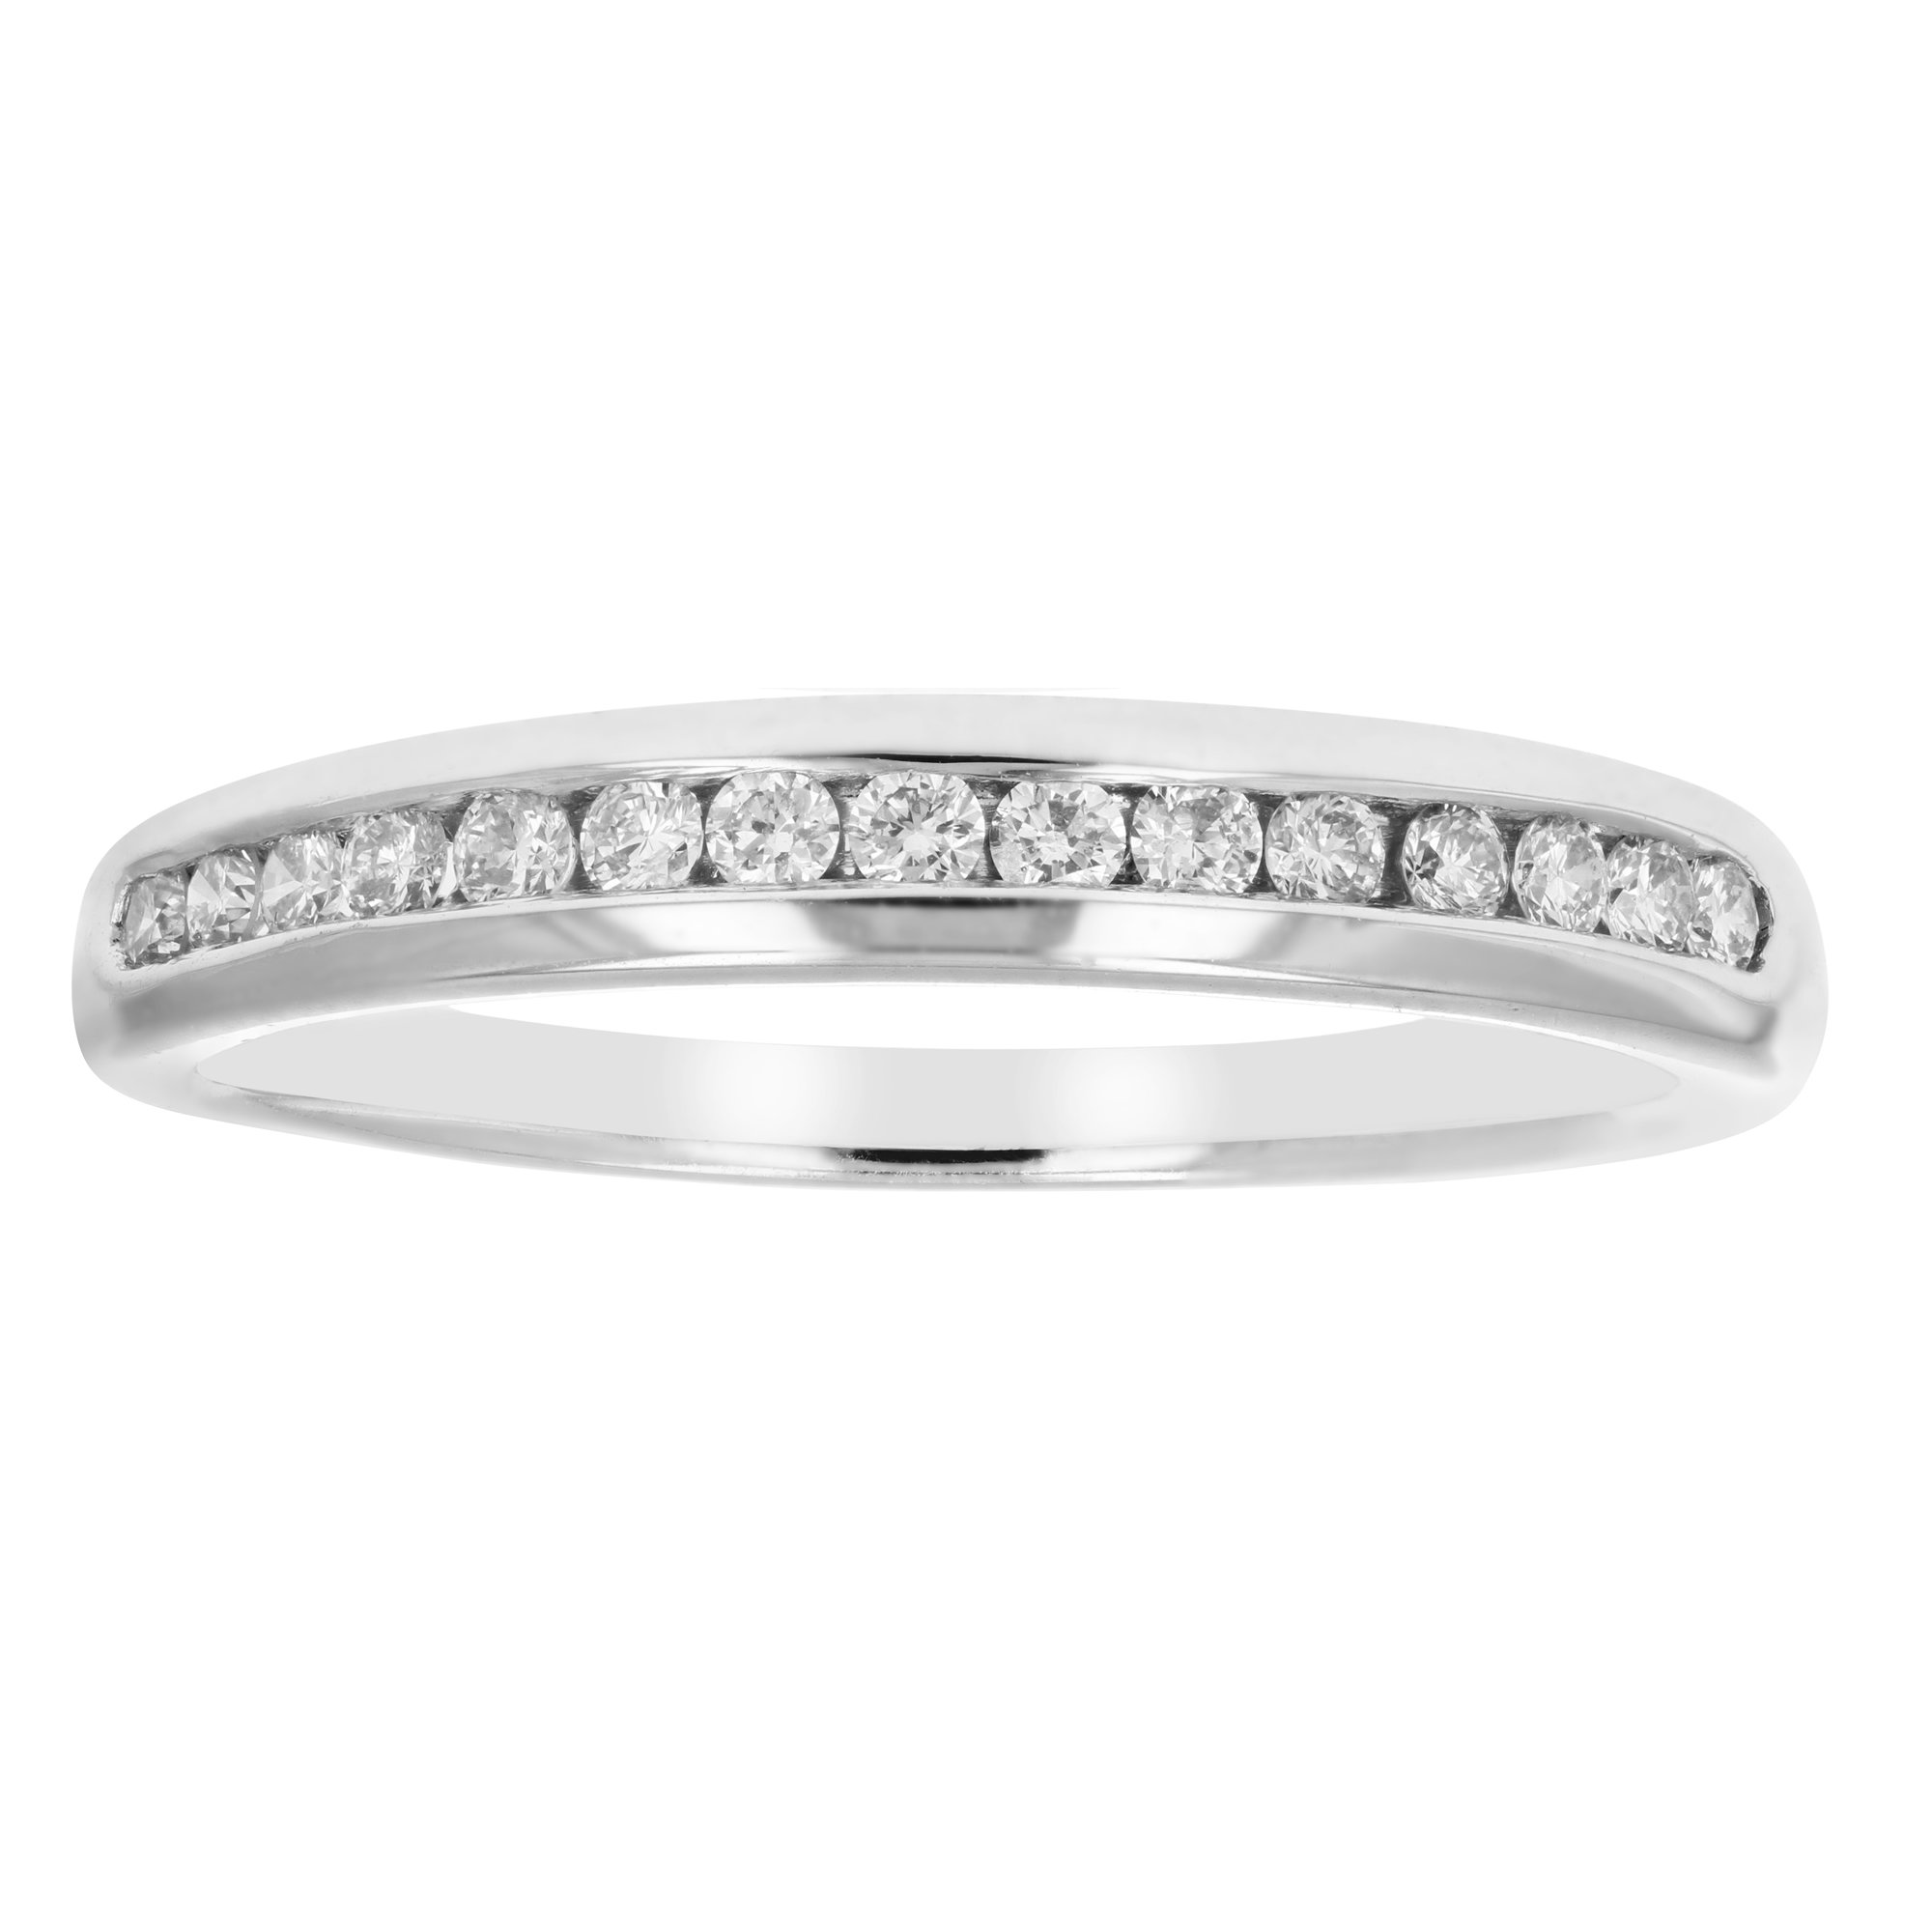 1/5 ctw Classic Diamond Wedding Band in 10K White Gold In Size 5